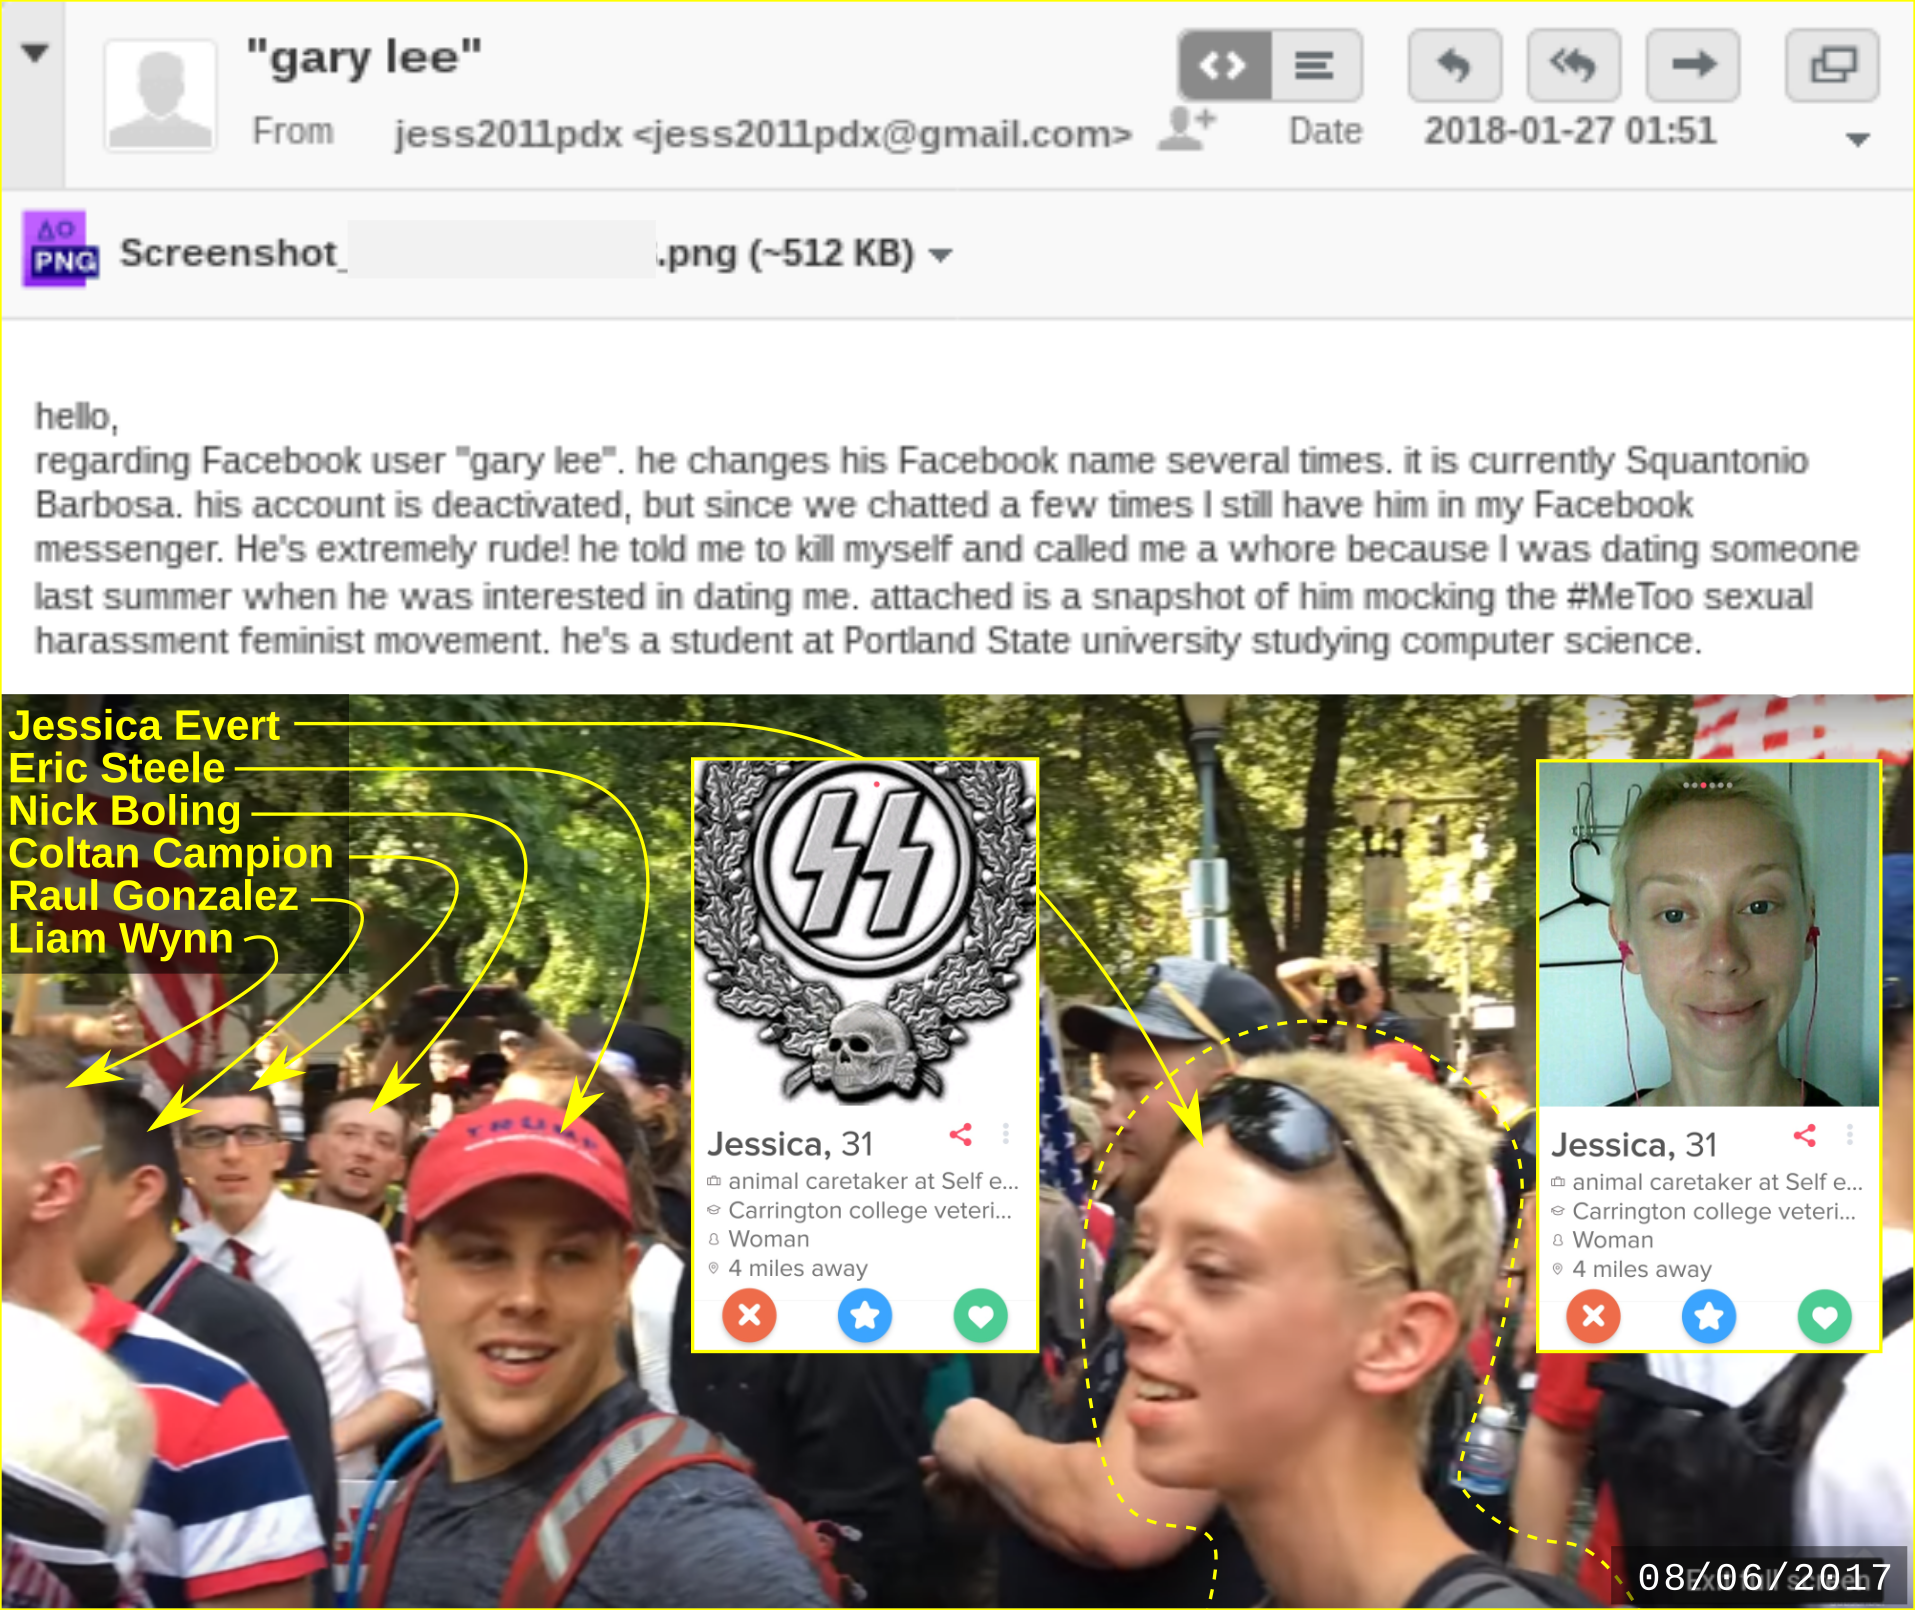 fascist Jess Evert sends information about Liam Wynn